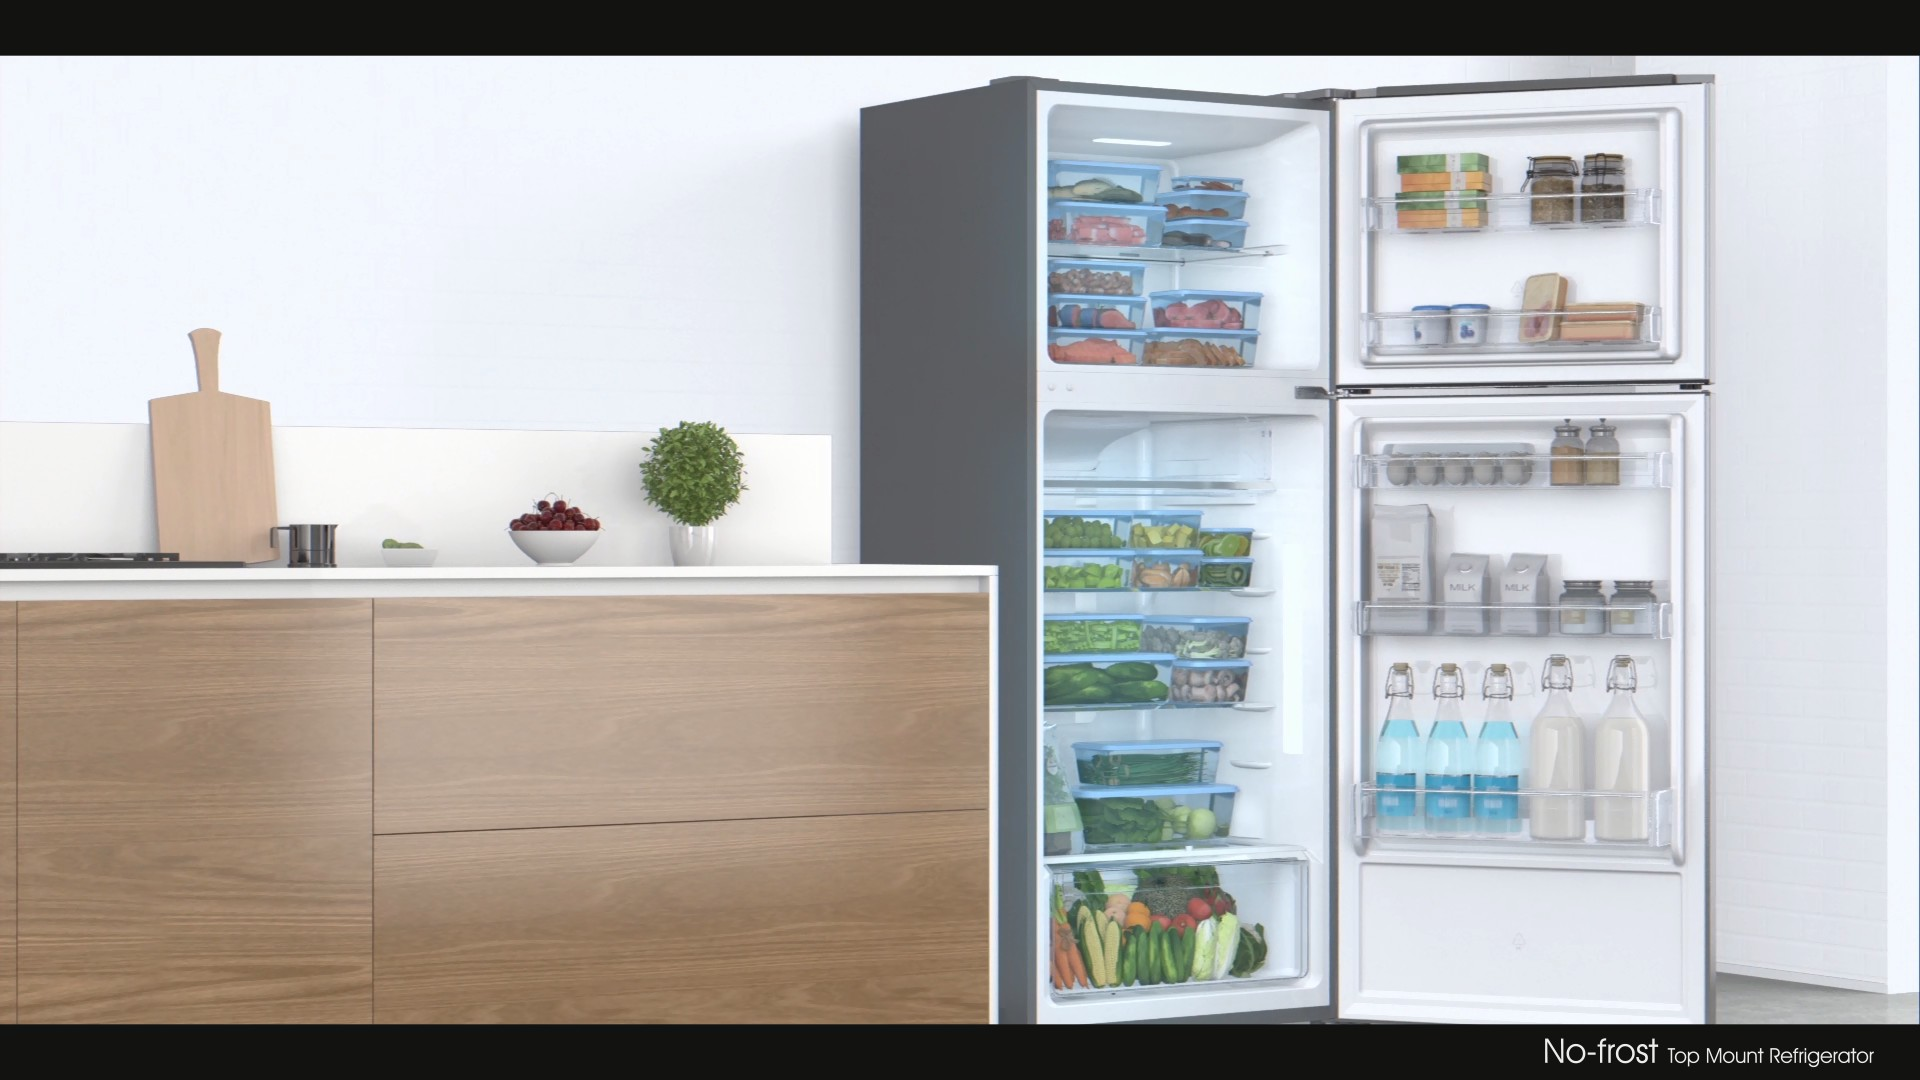 Homa Total No-Frost Top Mount Refrigerator(2016)